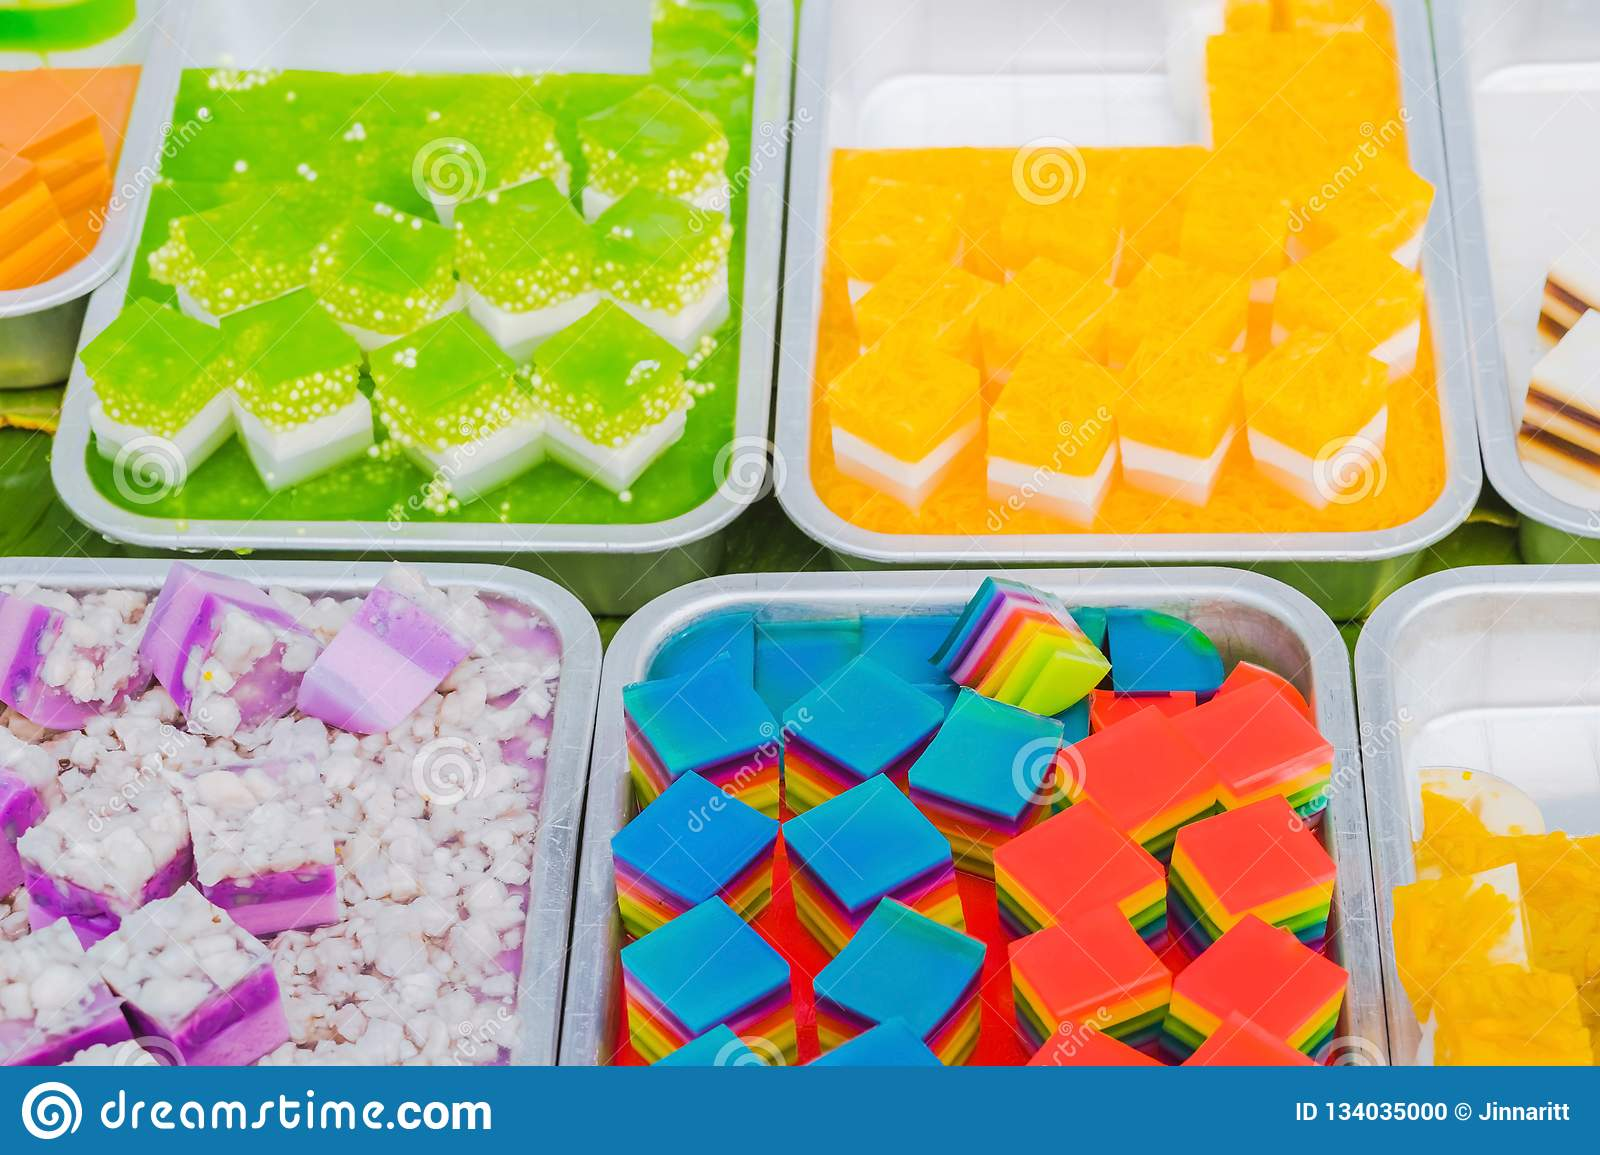 Colorful of Thai Jelly on aluminum tray for sale in street food